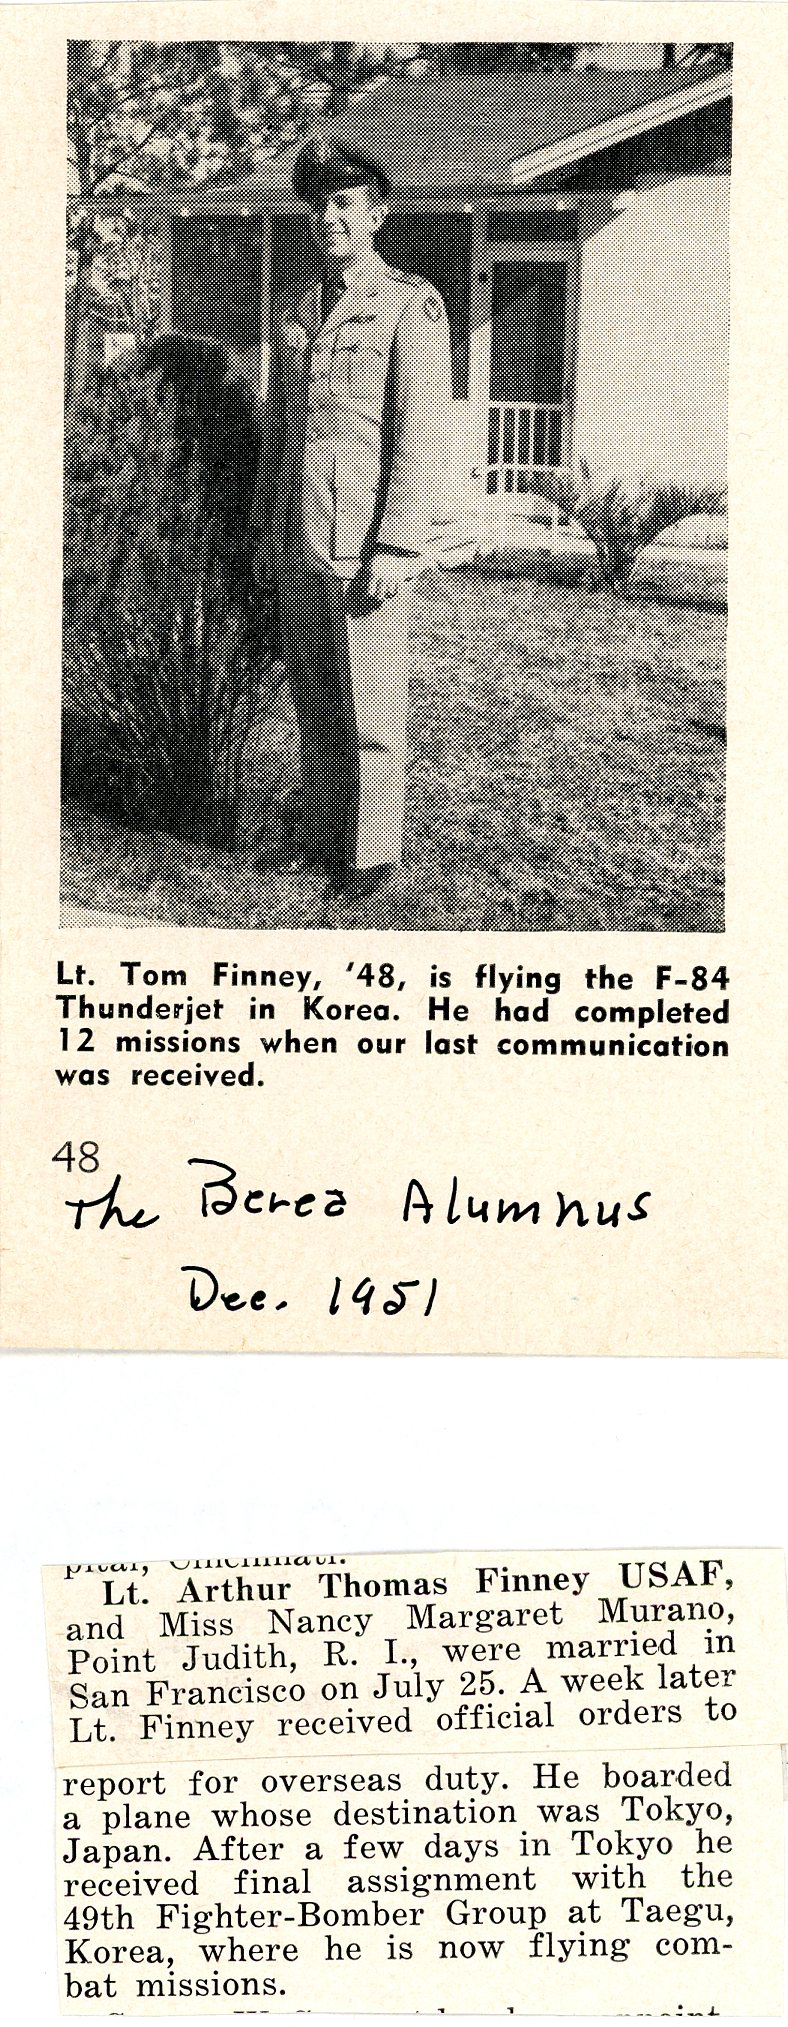 Published in The Berea Alumnus, December 1951